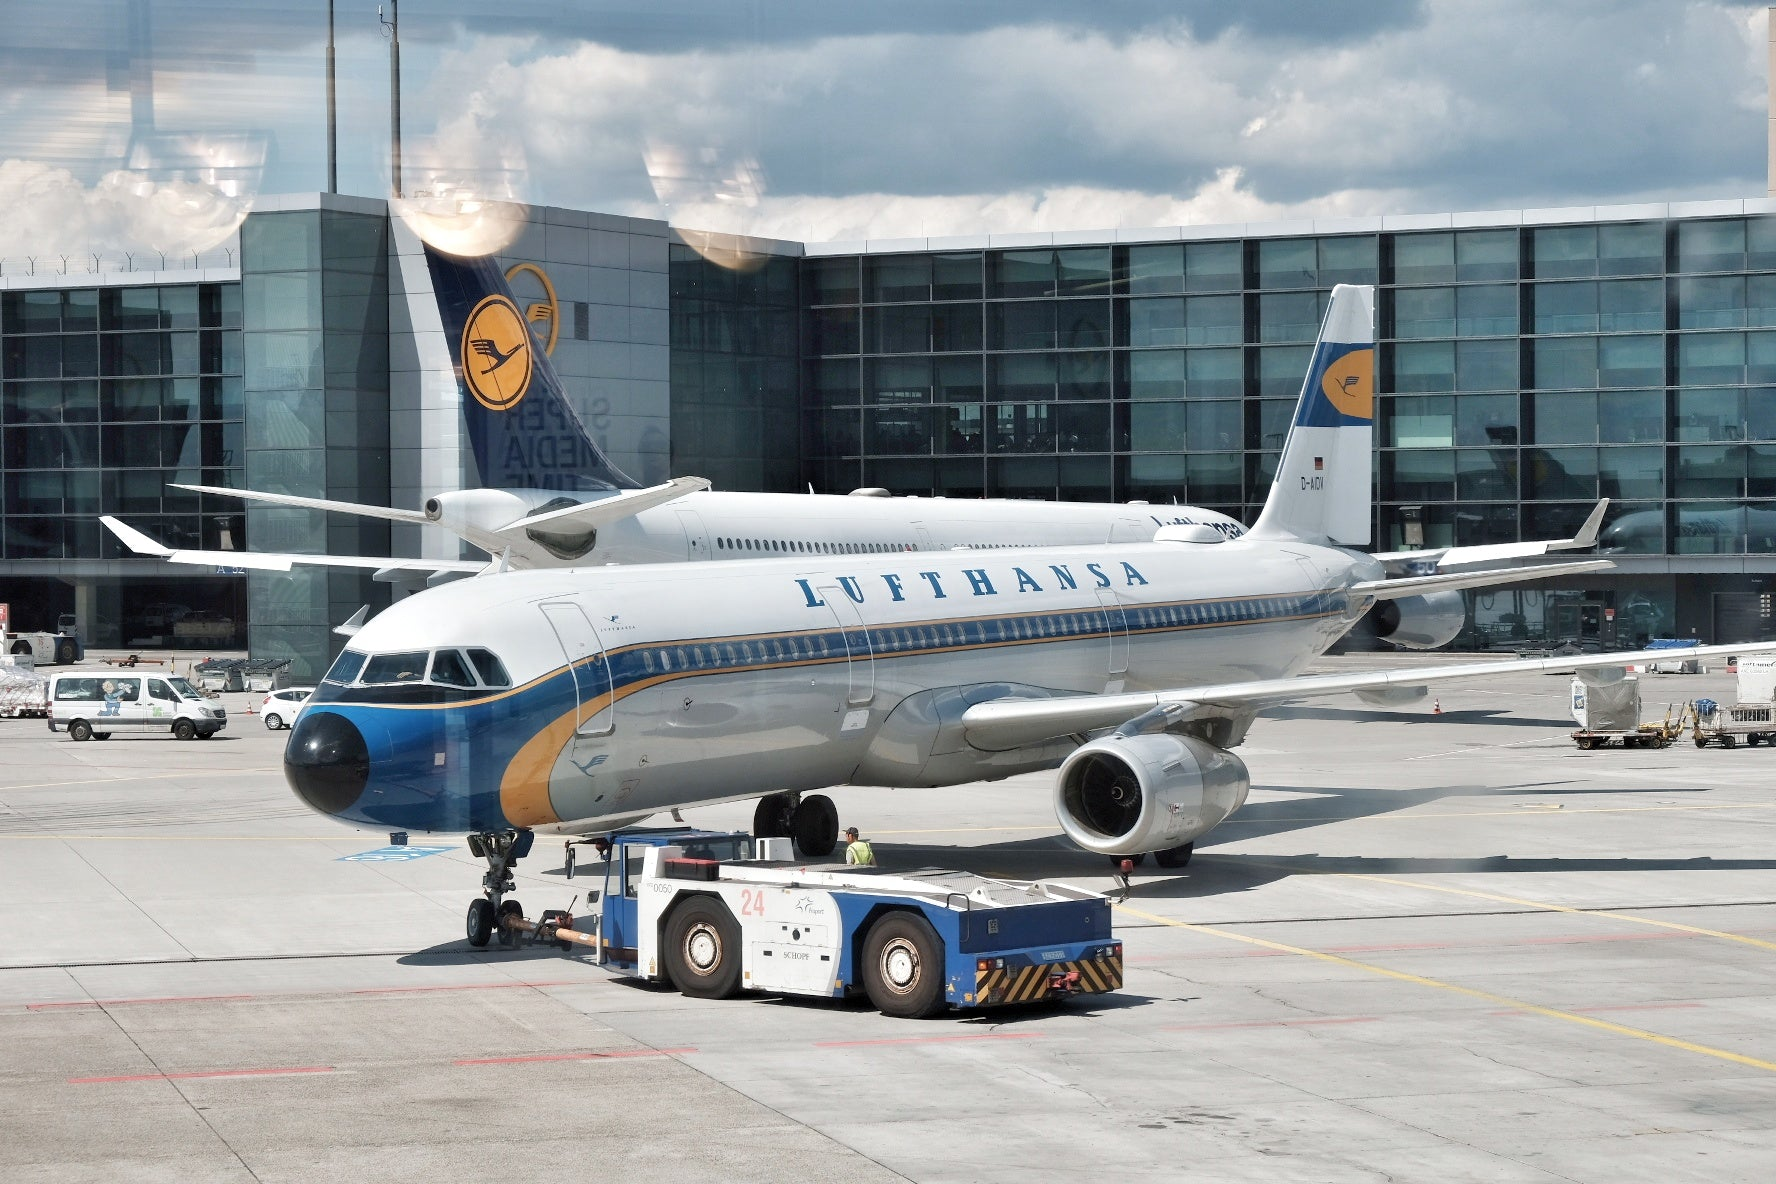 Lufthansa Special Edition – Wunderkey Carbon Air